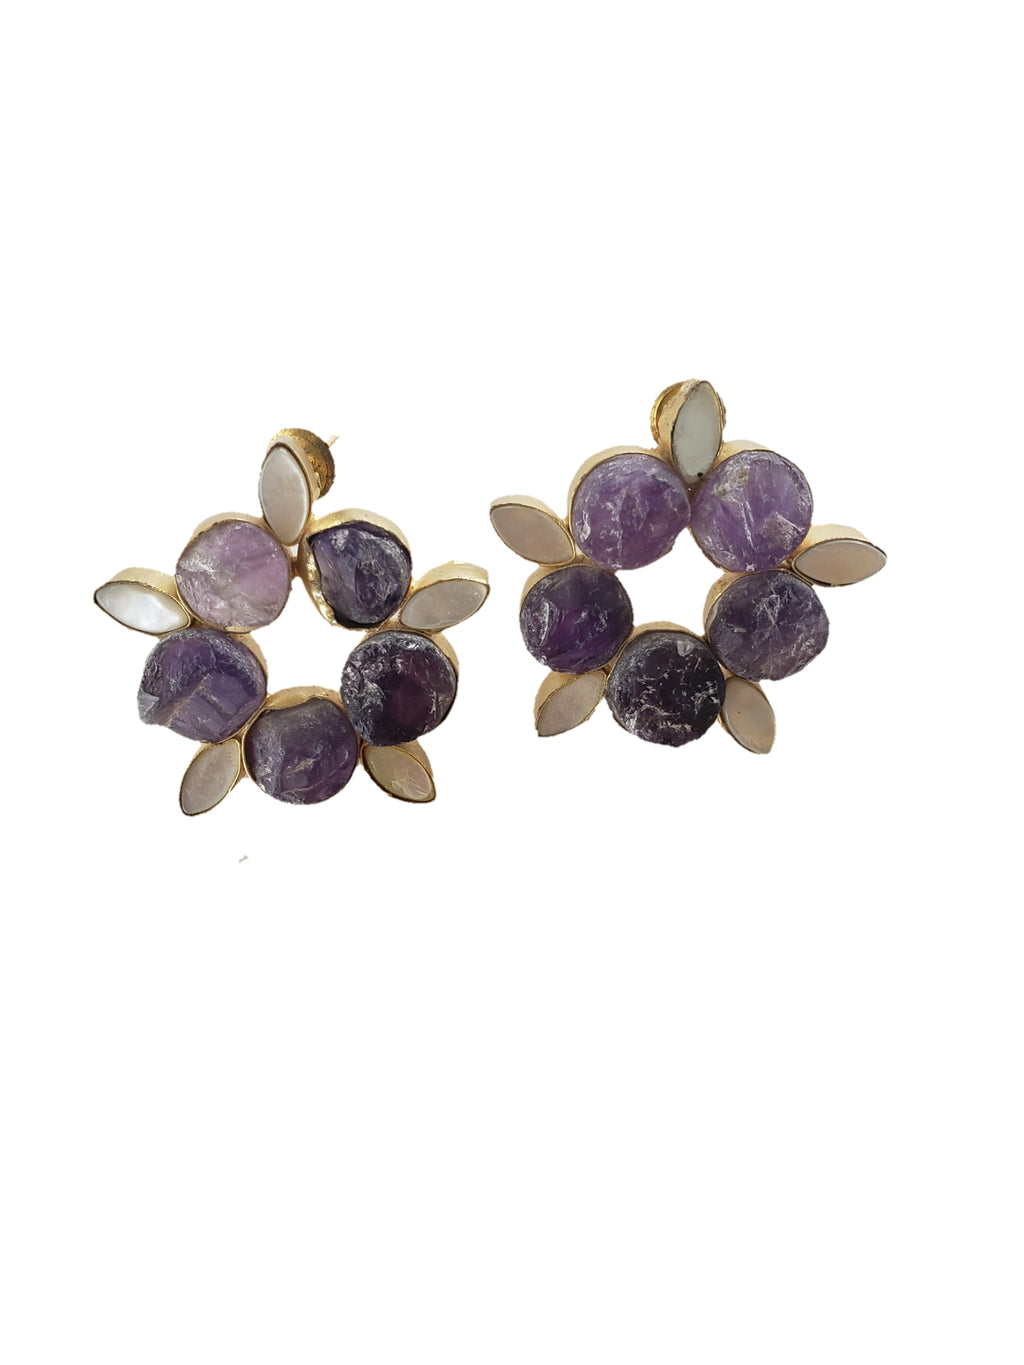 Amethyst and Mother of Pearl Stud Earrings - The Bauble Shop